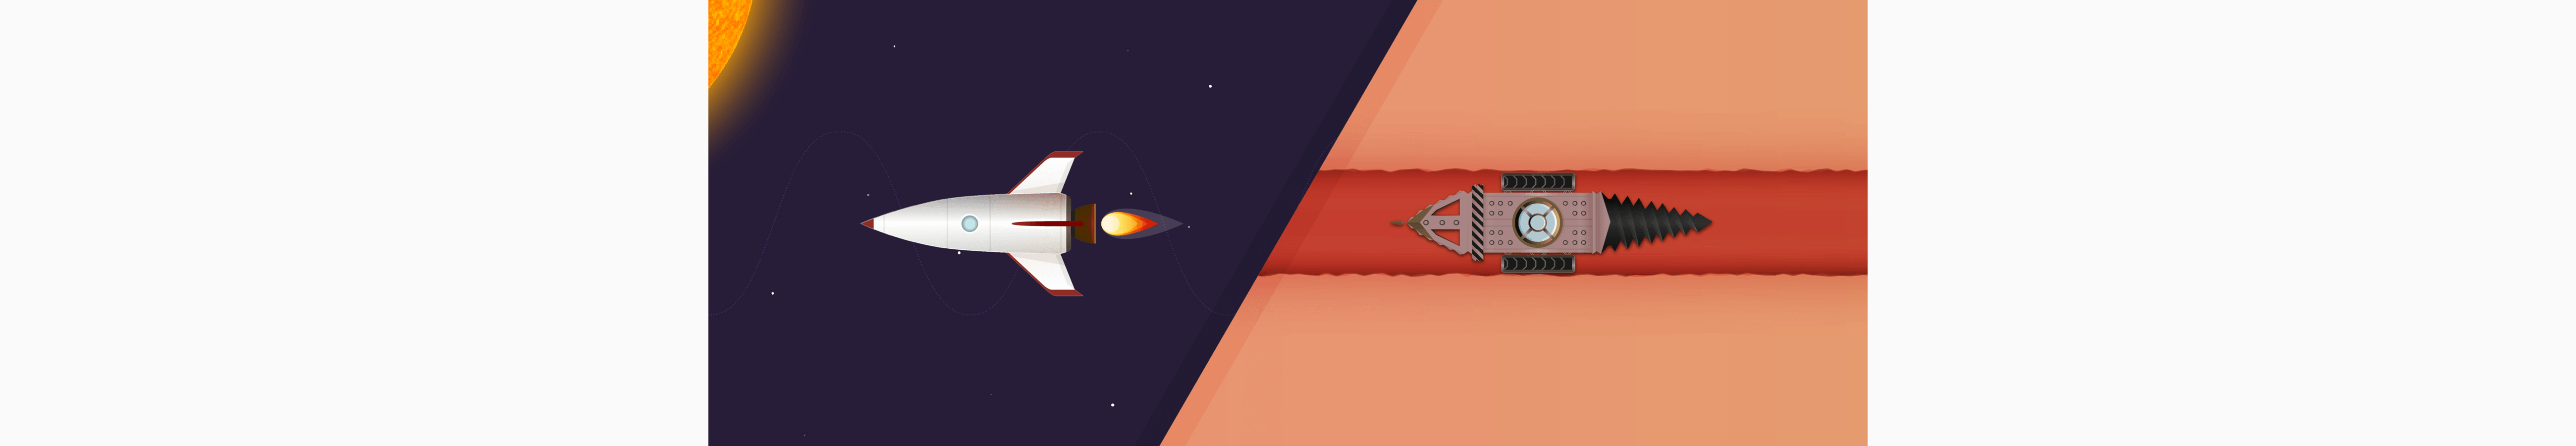 Picture of the rocket and digger from the visualization